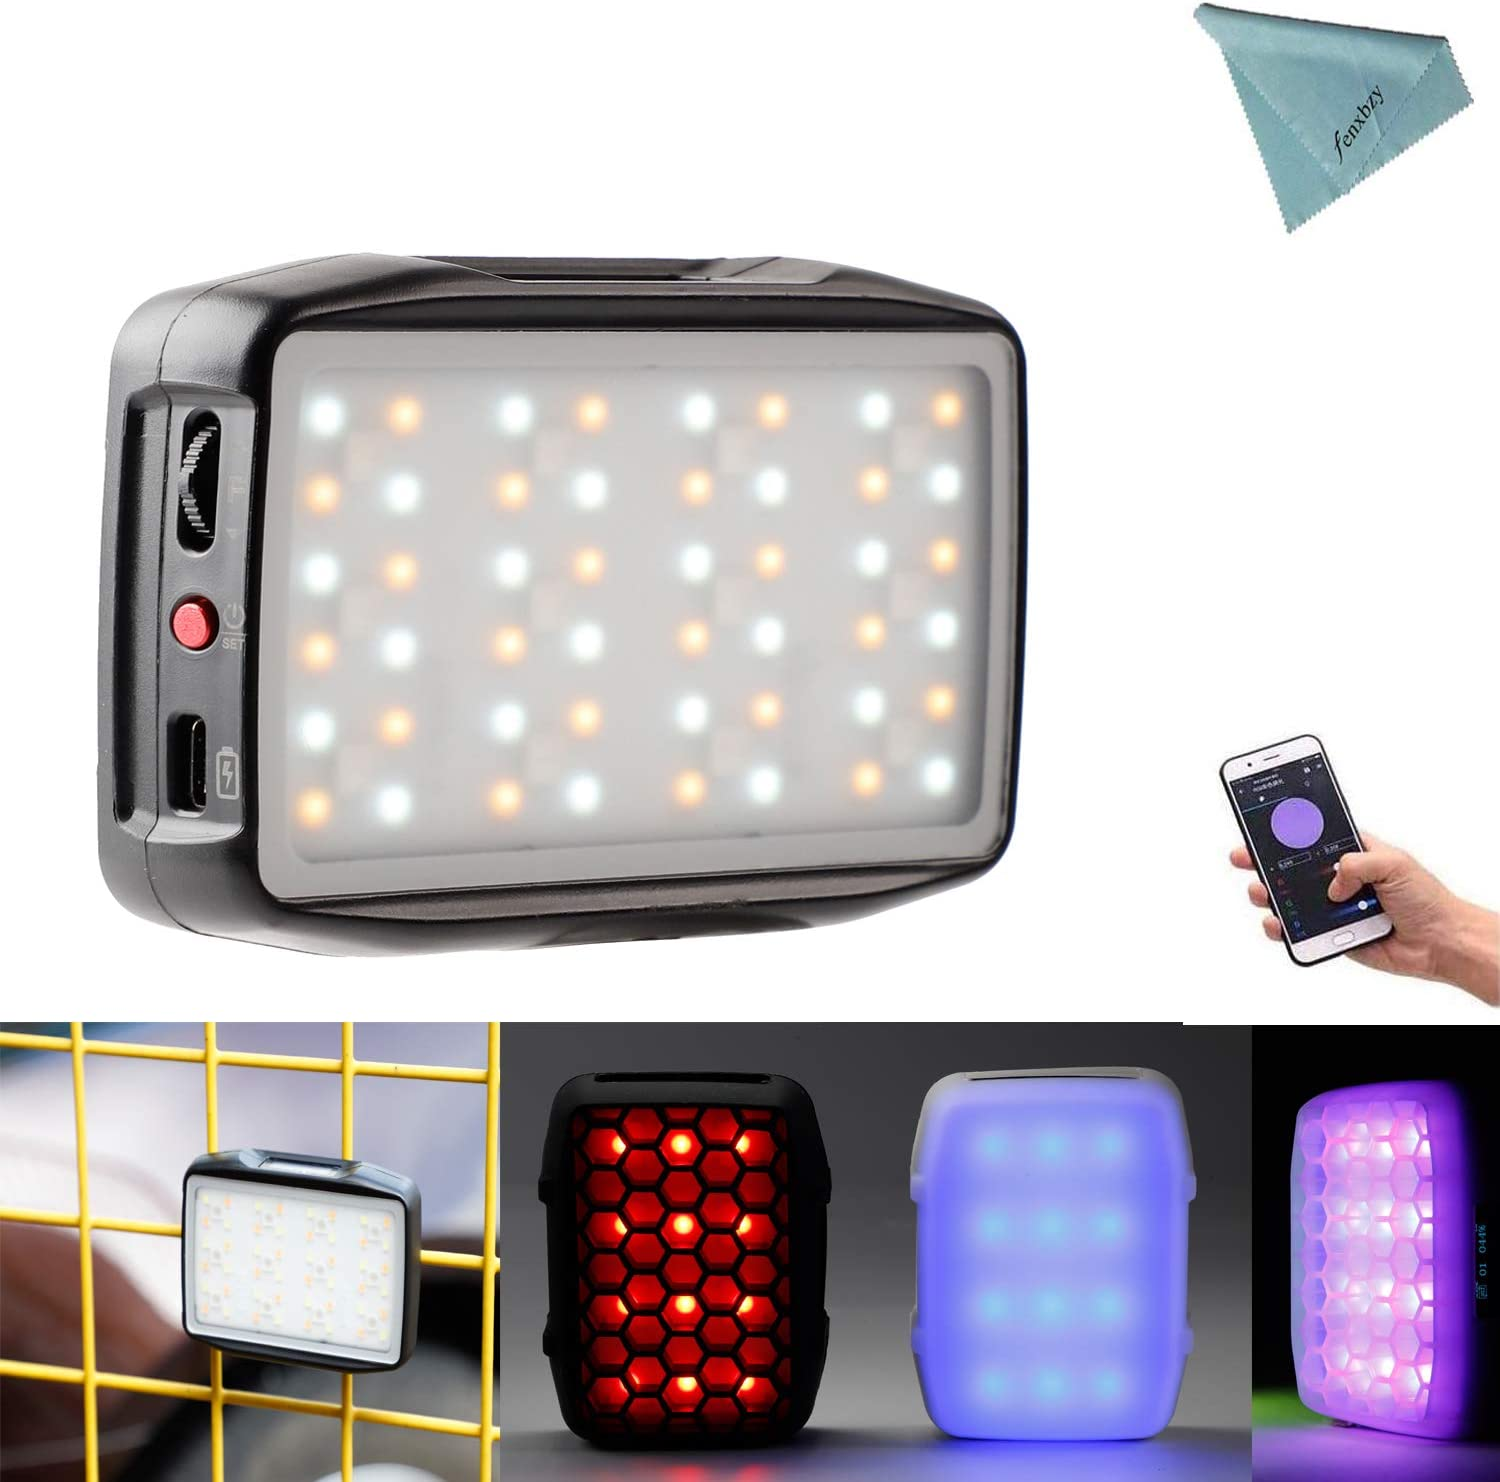 Falcon Eyes F7 Mini 5W RGB LED On Camera Light 2500k-9000k CRI 96 HSI Mode,Support Magnetic Attraction and Smartphone App Control for Vlog,YouTube,Tiktok,Live Broadcast